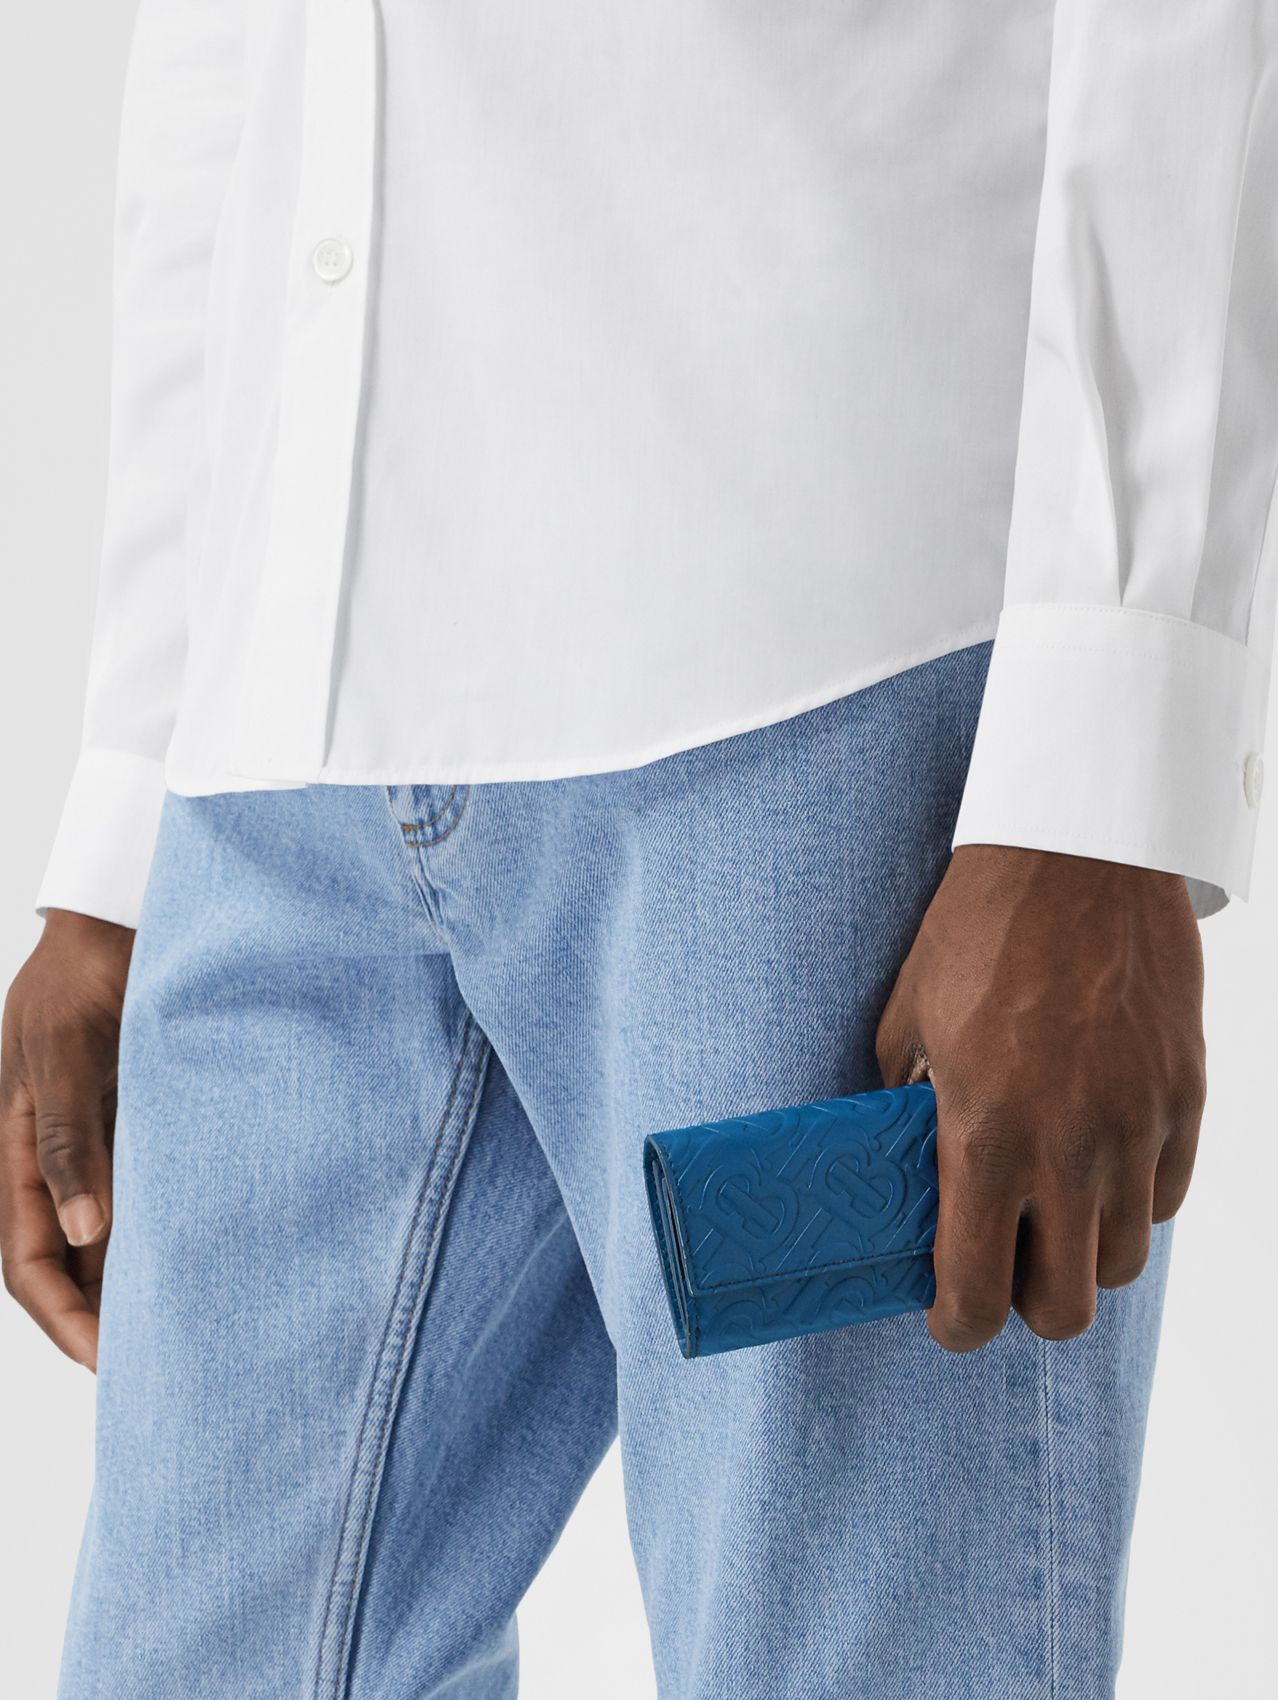 Small Monogram Leather Wallet with Detachable Strap in Pale Canvas Blue